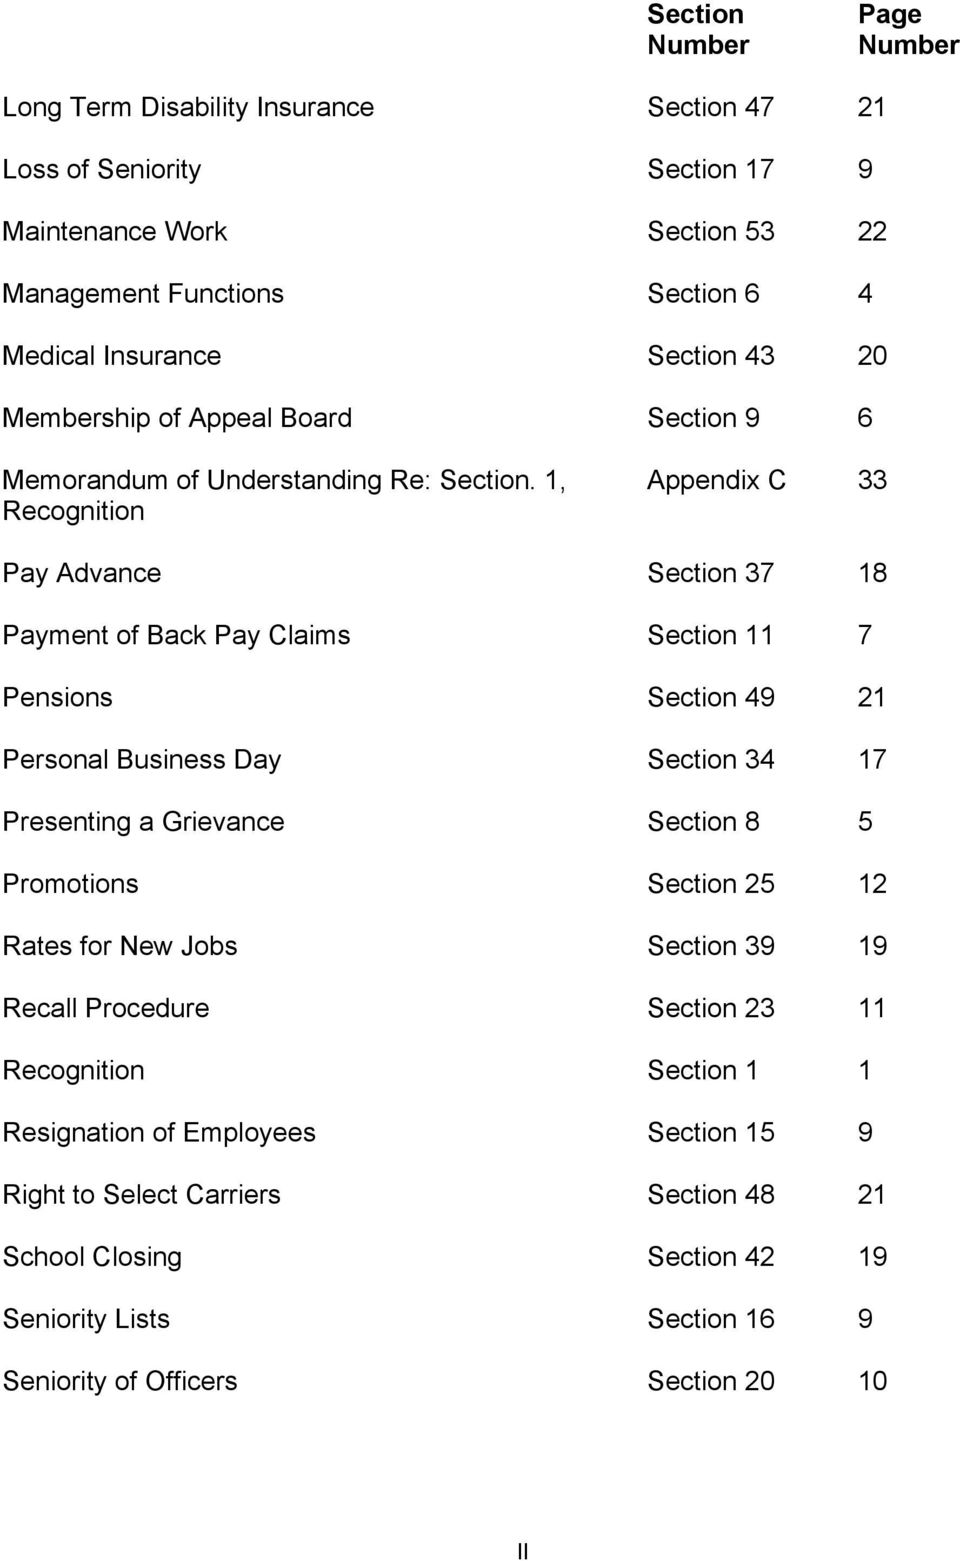 1, Recognition Appendix C 33 Pay Advance Section 37 18 Payment of Back Pay Claims Section 11 7 Pensions Section 49 21 Personal Business Day Section 34 17 Presenting a Grievance Section 8 5